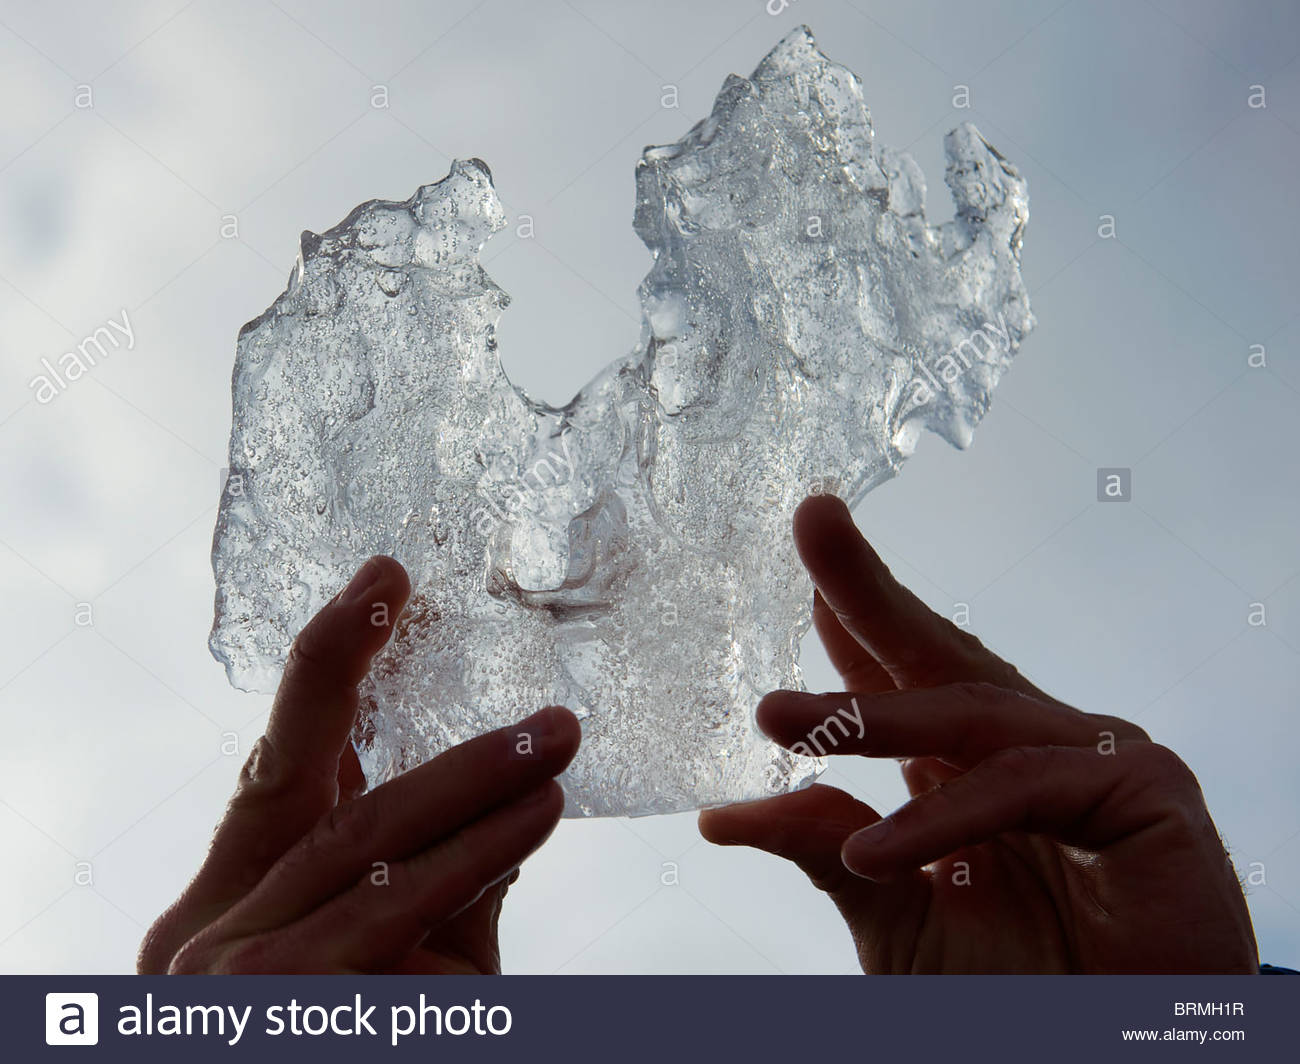 Piece of glacial ice with air bubbles being inspected - Stock Image